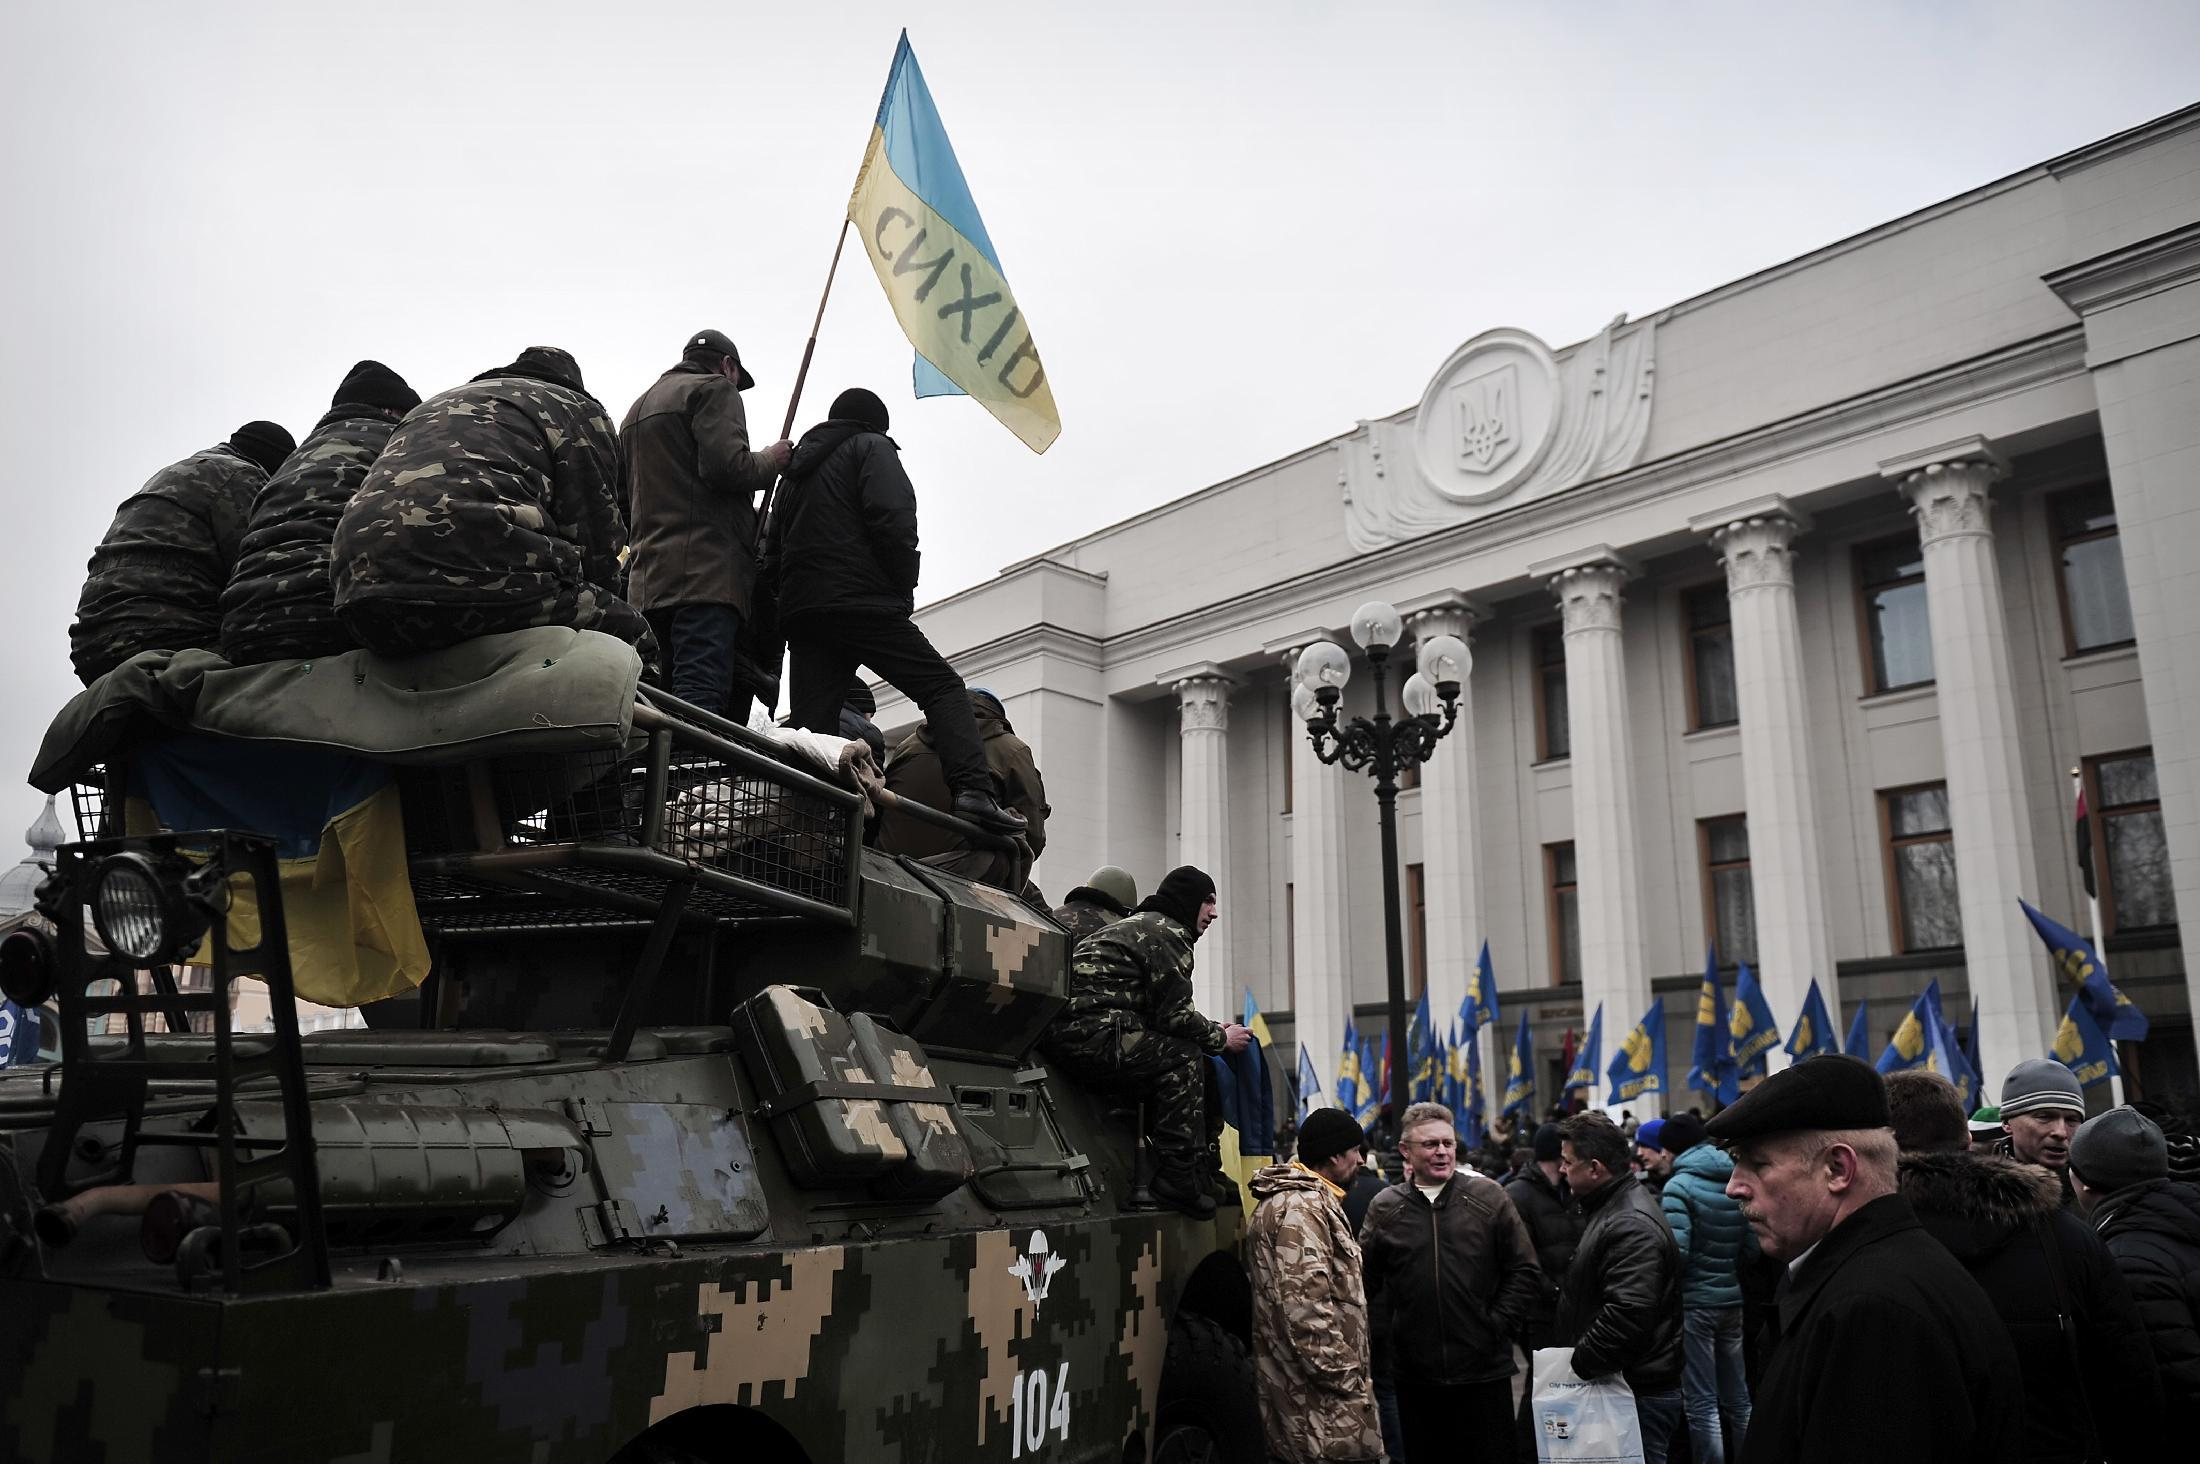 Maidan self-defence activists sit on an armoured vehicle in front of the parliament in central Kiev on February 27, 2014 (AFP Photo/Louisa Gouliamaki)